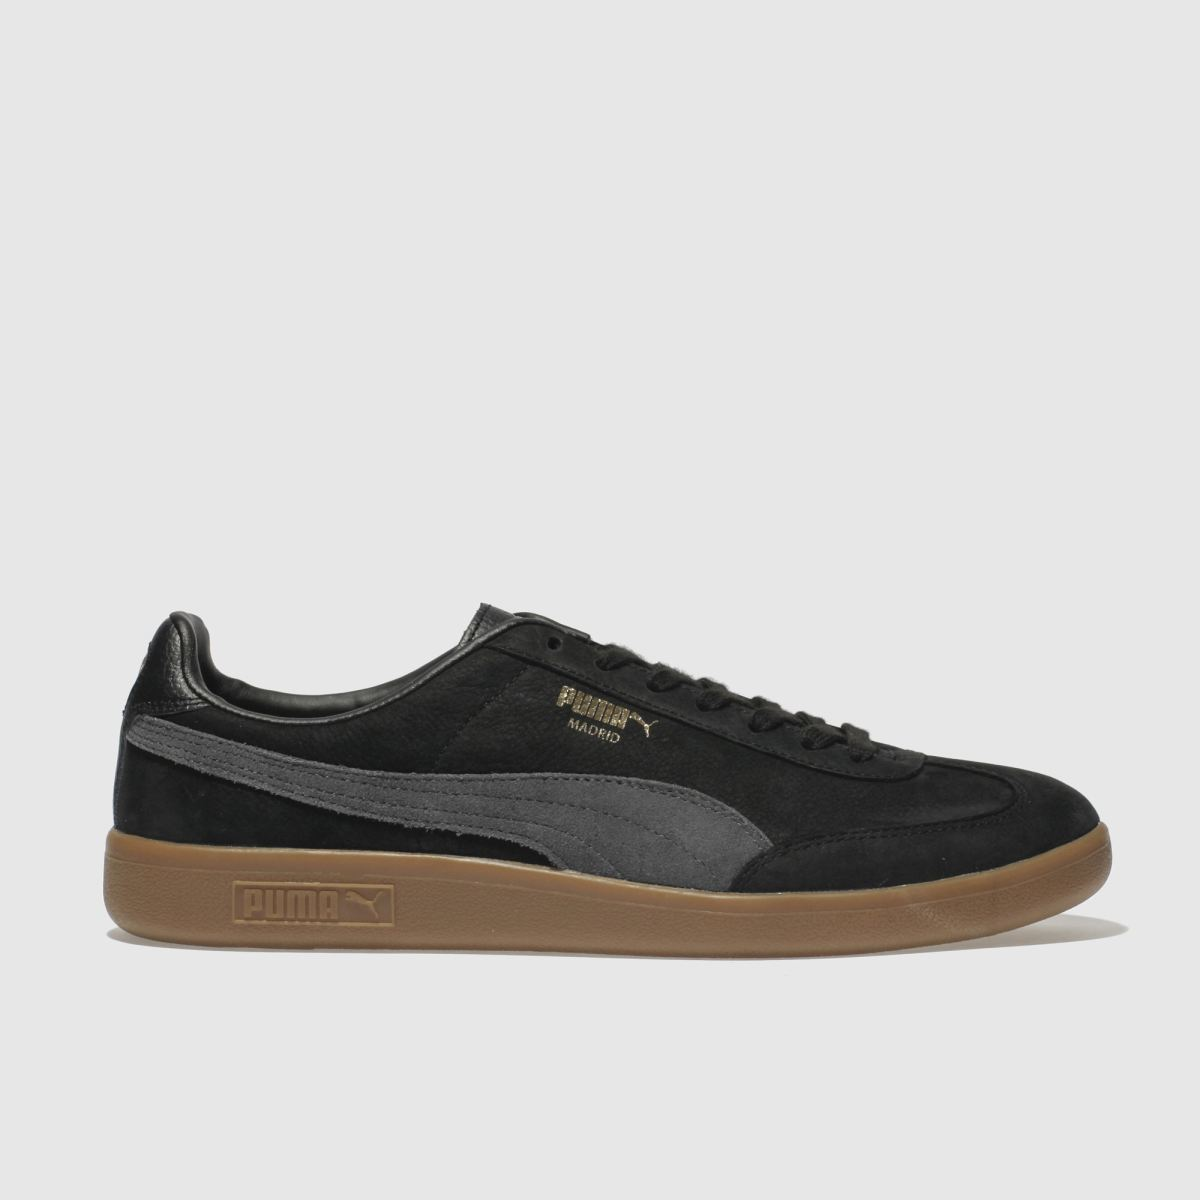 Puma Black & Grey Madrid Nubuck Trainers